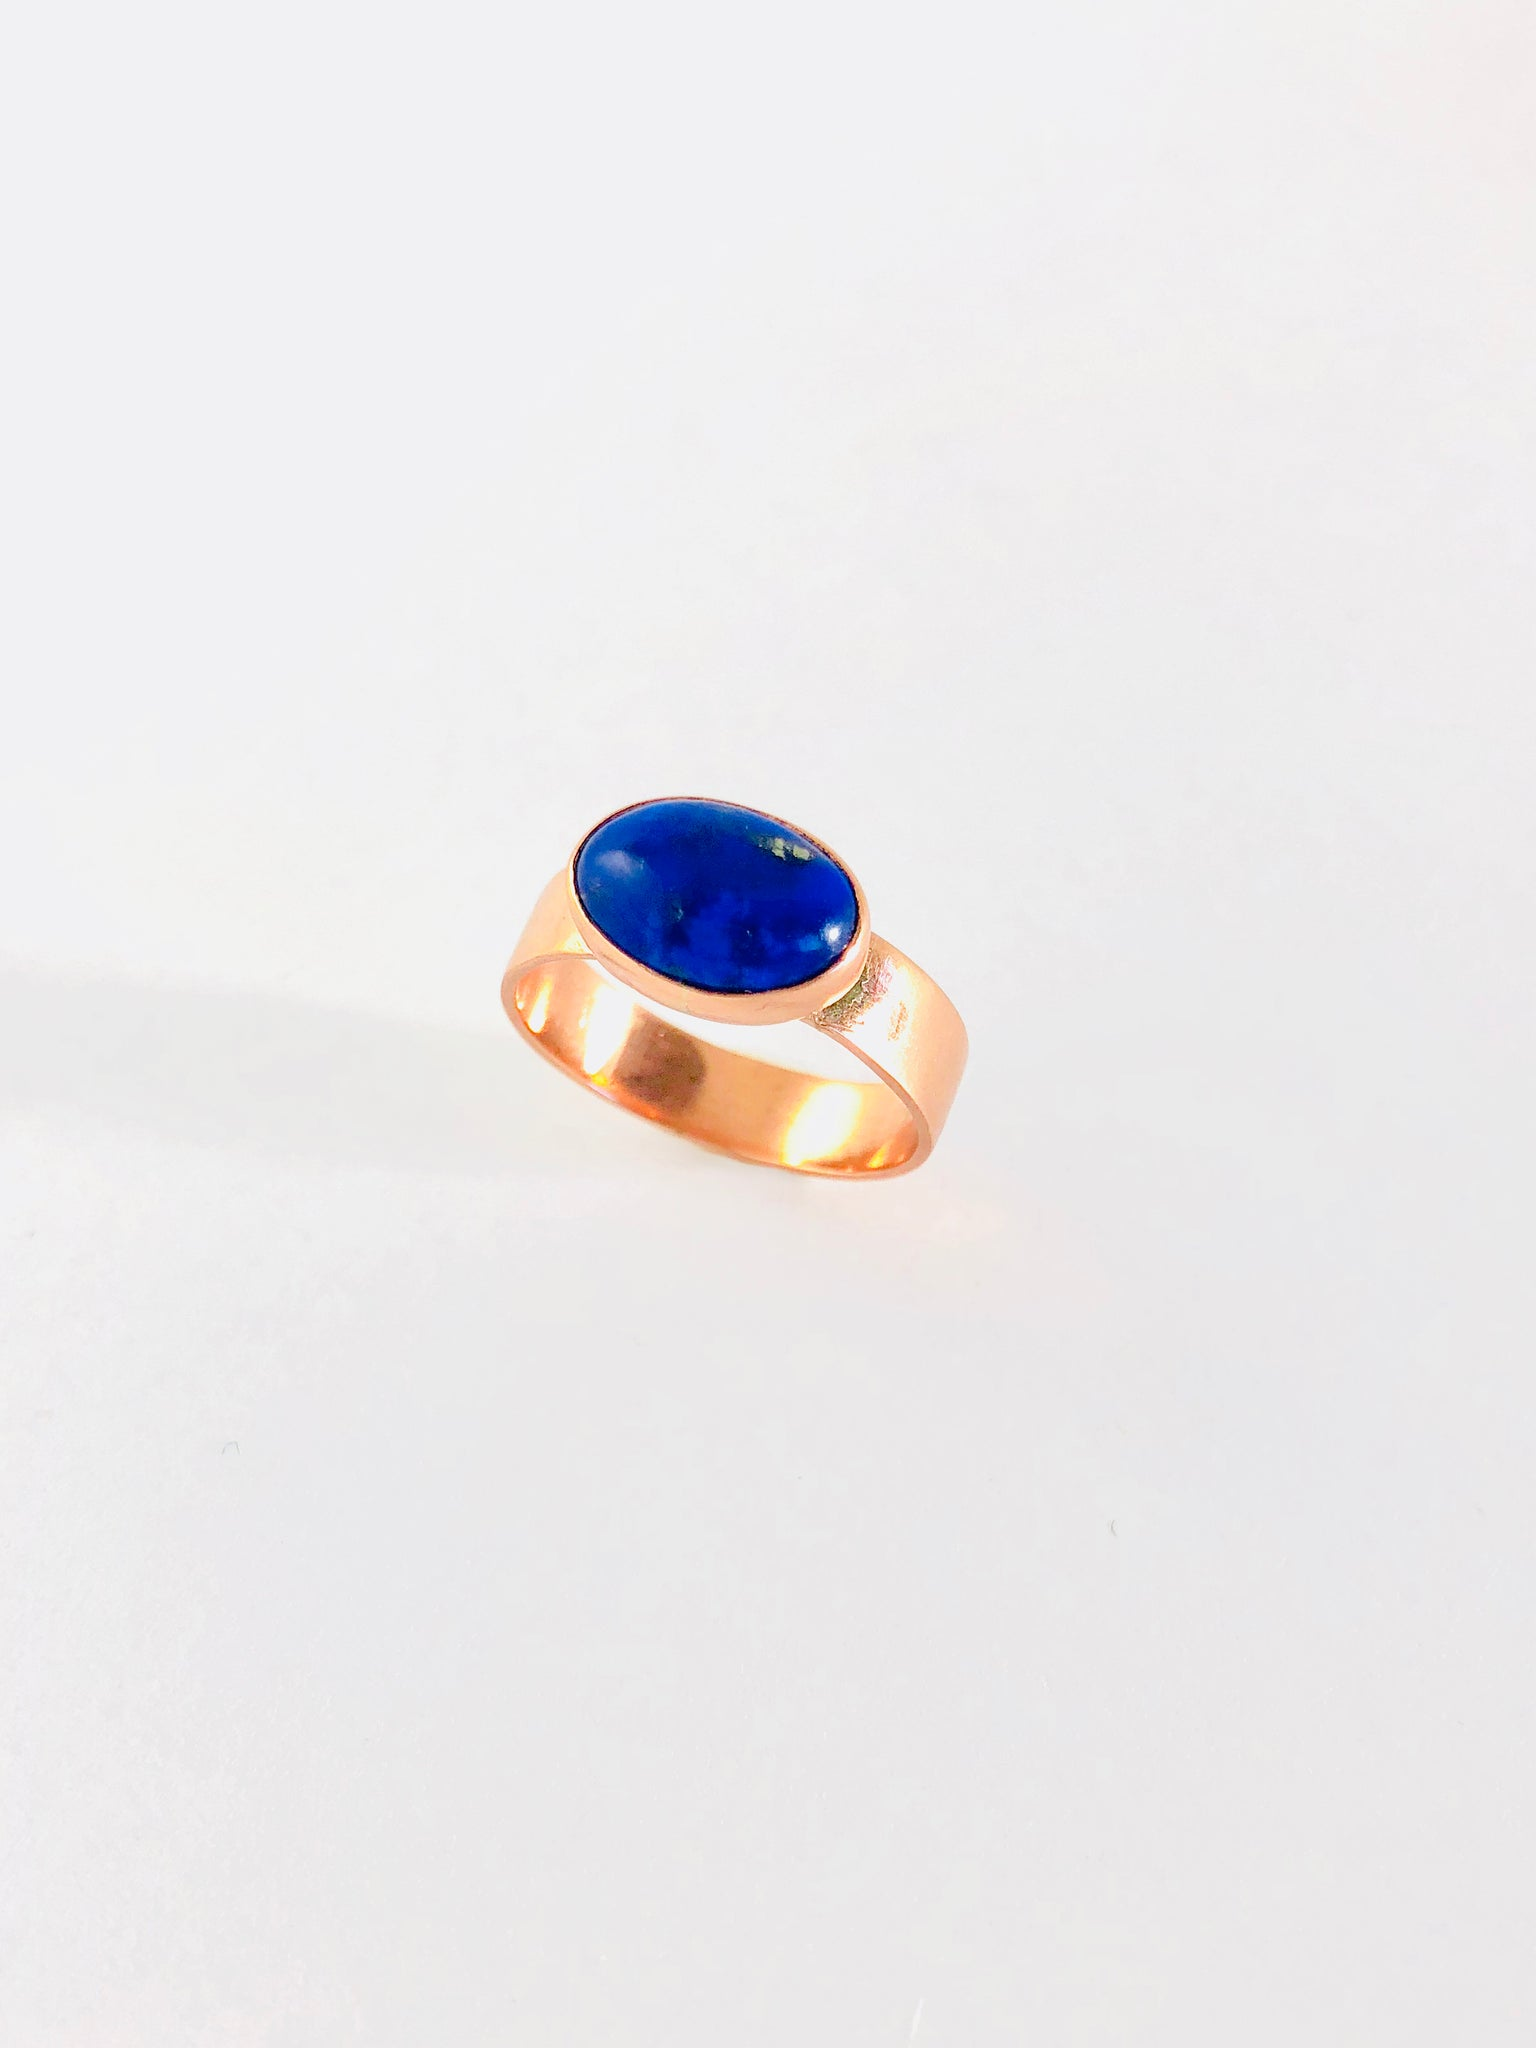 Lapis Lazuli Ring in Copper - Sheer Envy